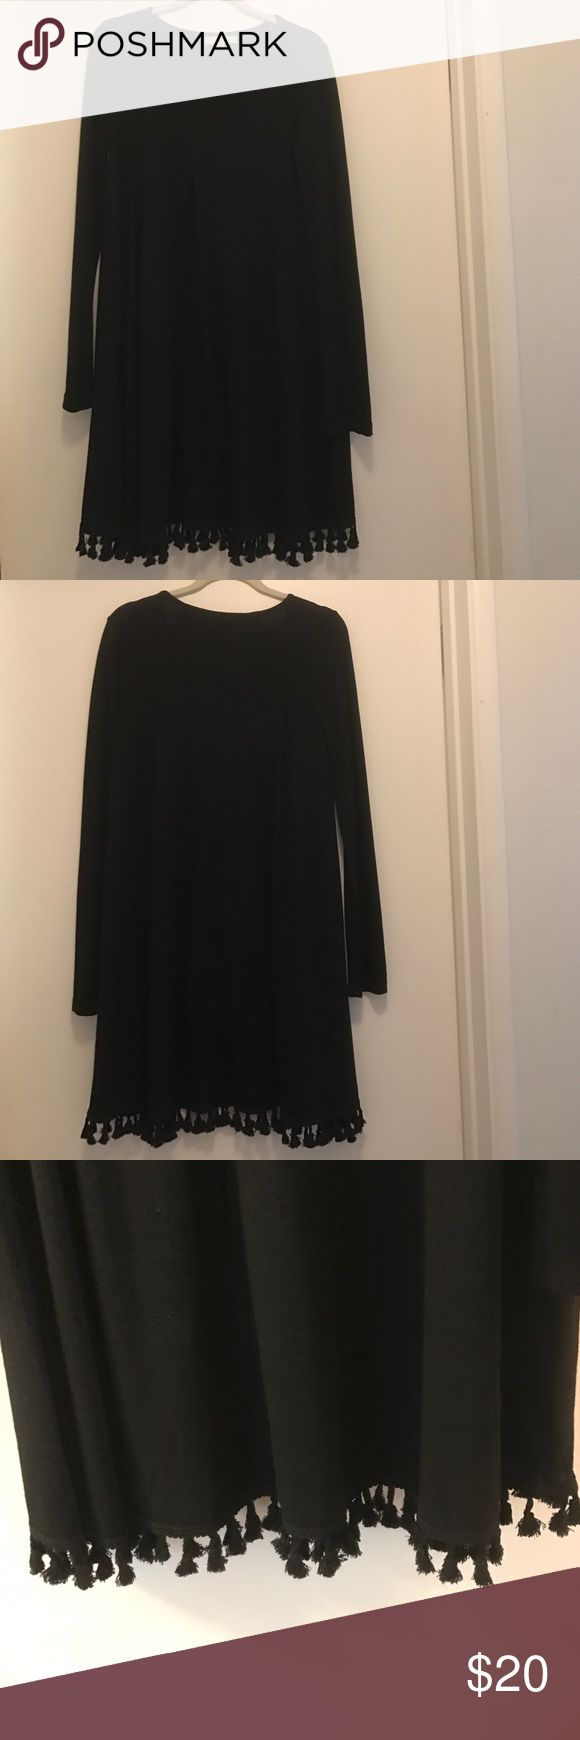 Long sleeve black tunic dress Super cute long sleeve tunic dress with tassel detail. Only worn one time! Purchased from a boutique Dottie Couture  Dresses Long Sleeve